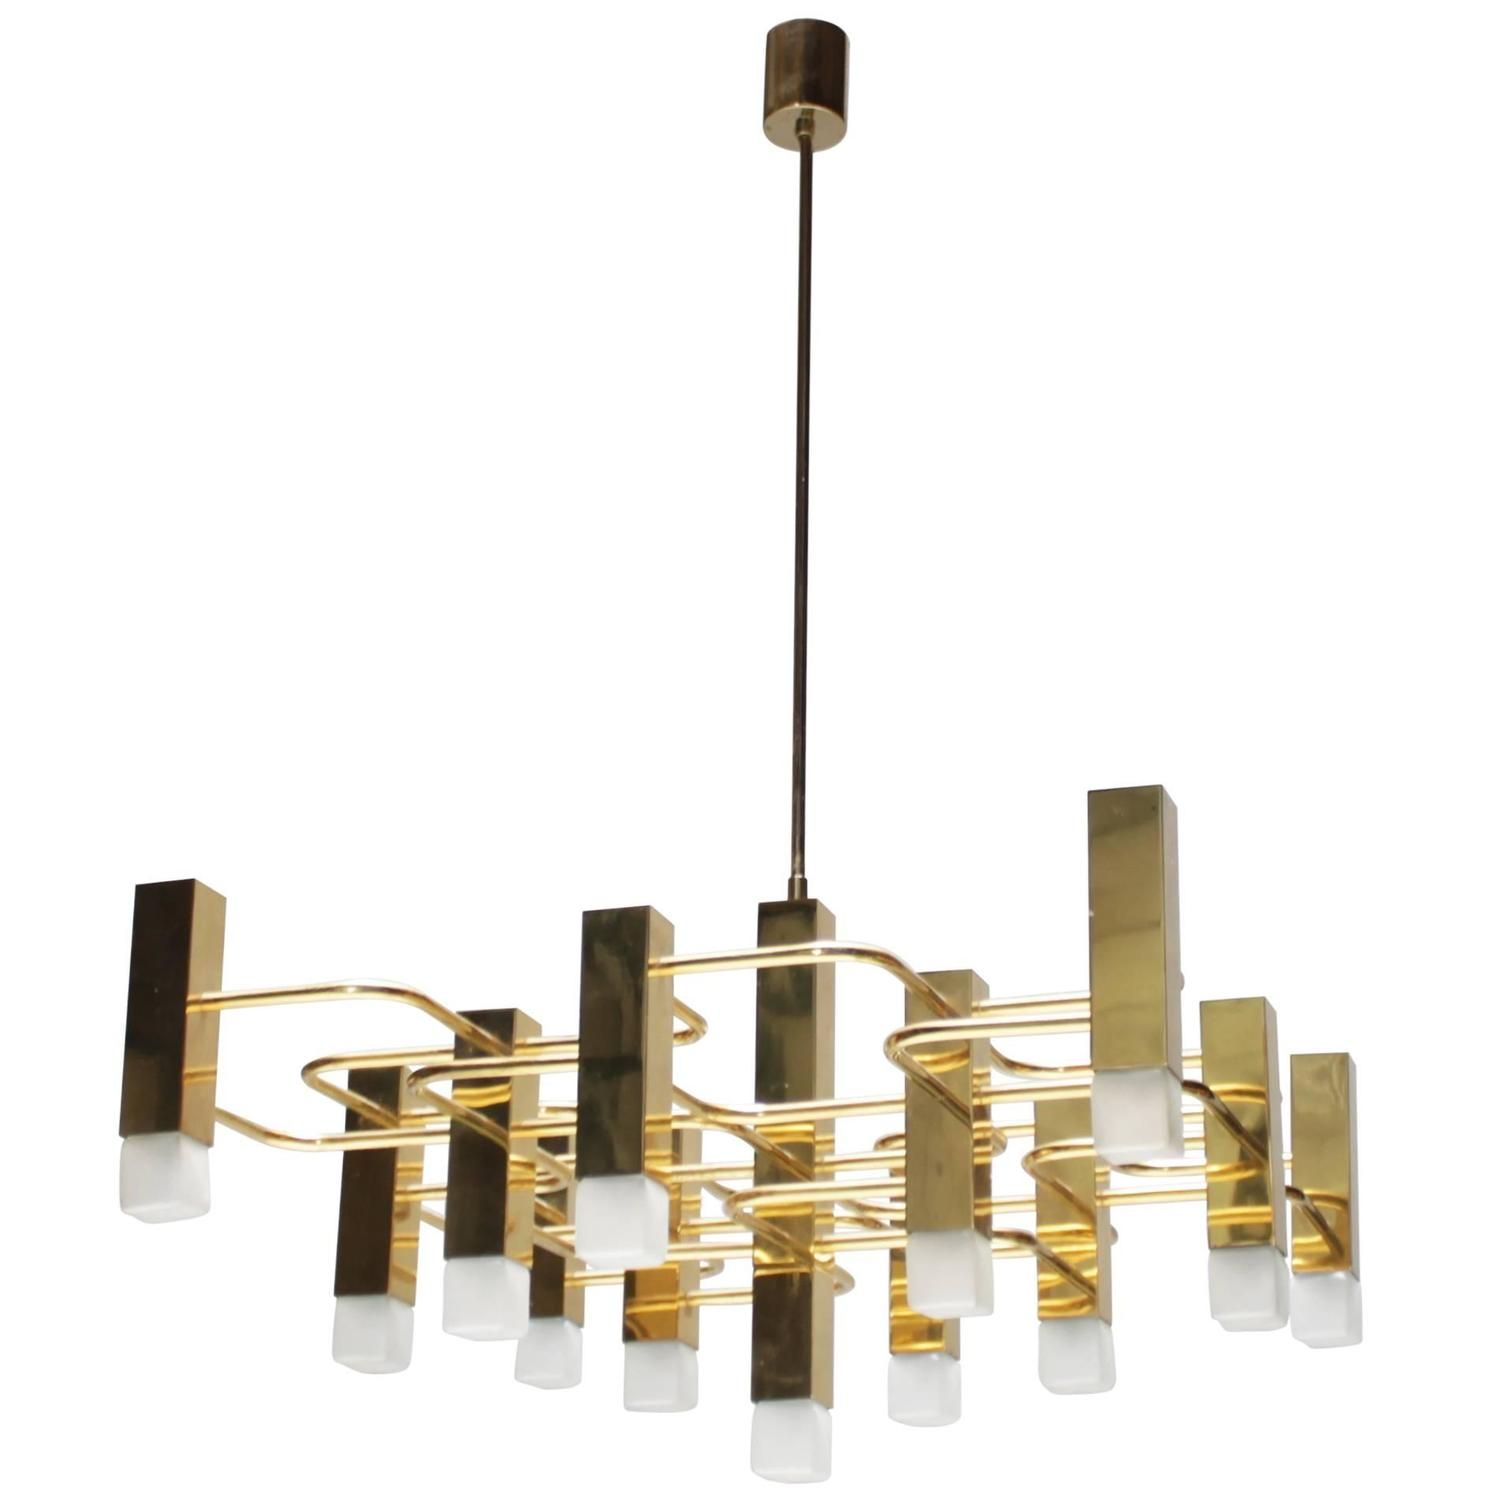 Large Brass Chandelier By Sciolari For Boulanger From A Unique Collection Of Antique And Modern Chandeliers Pendants At